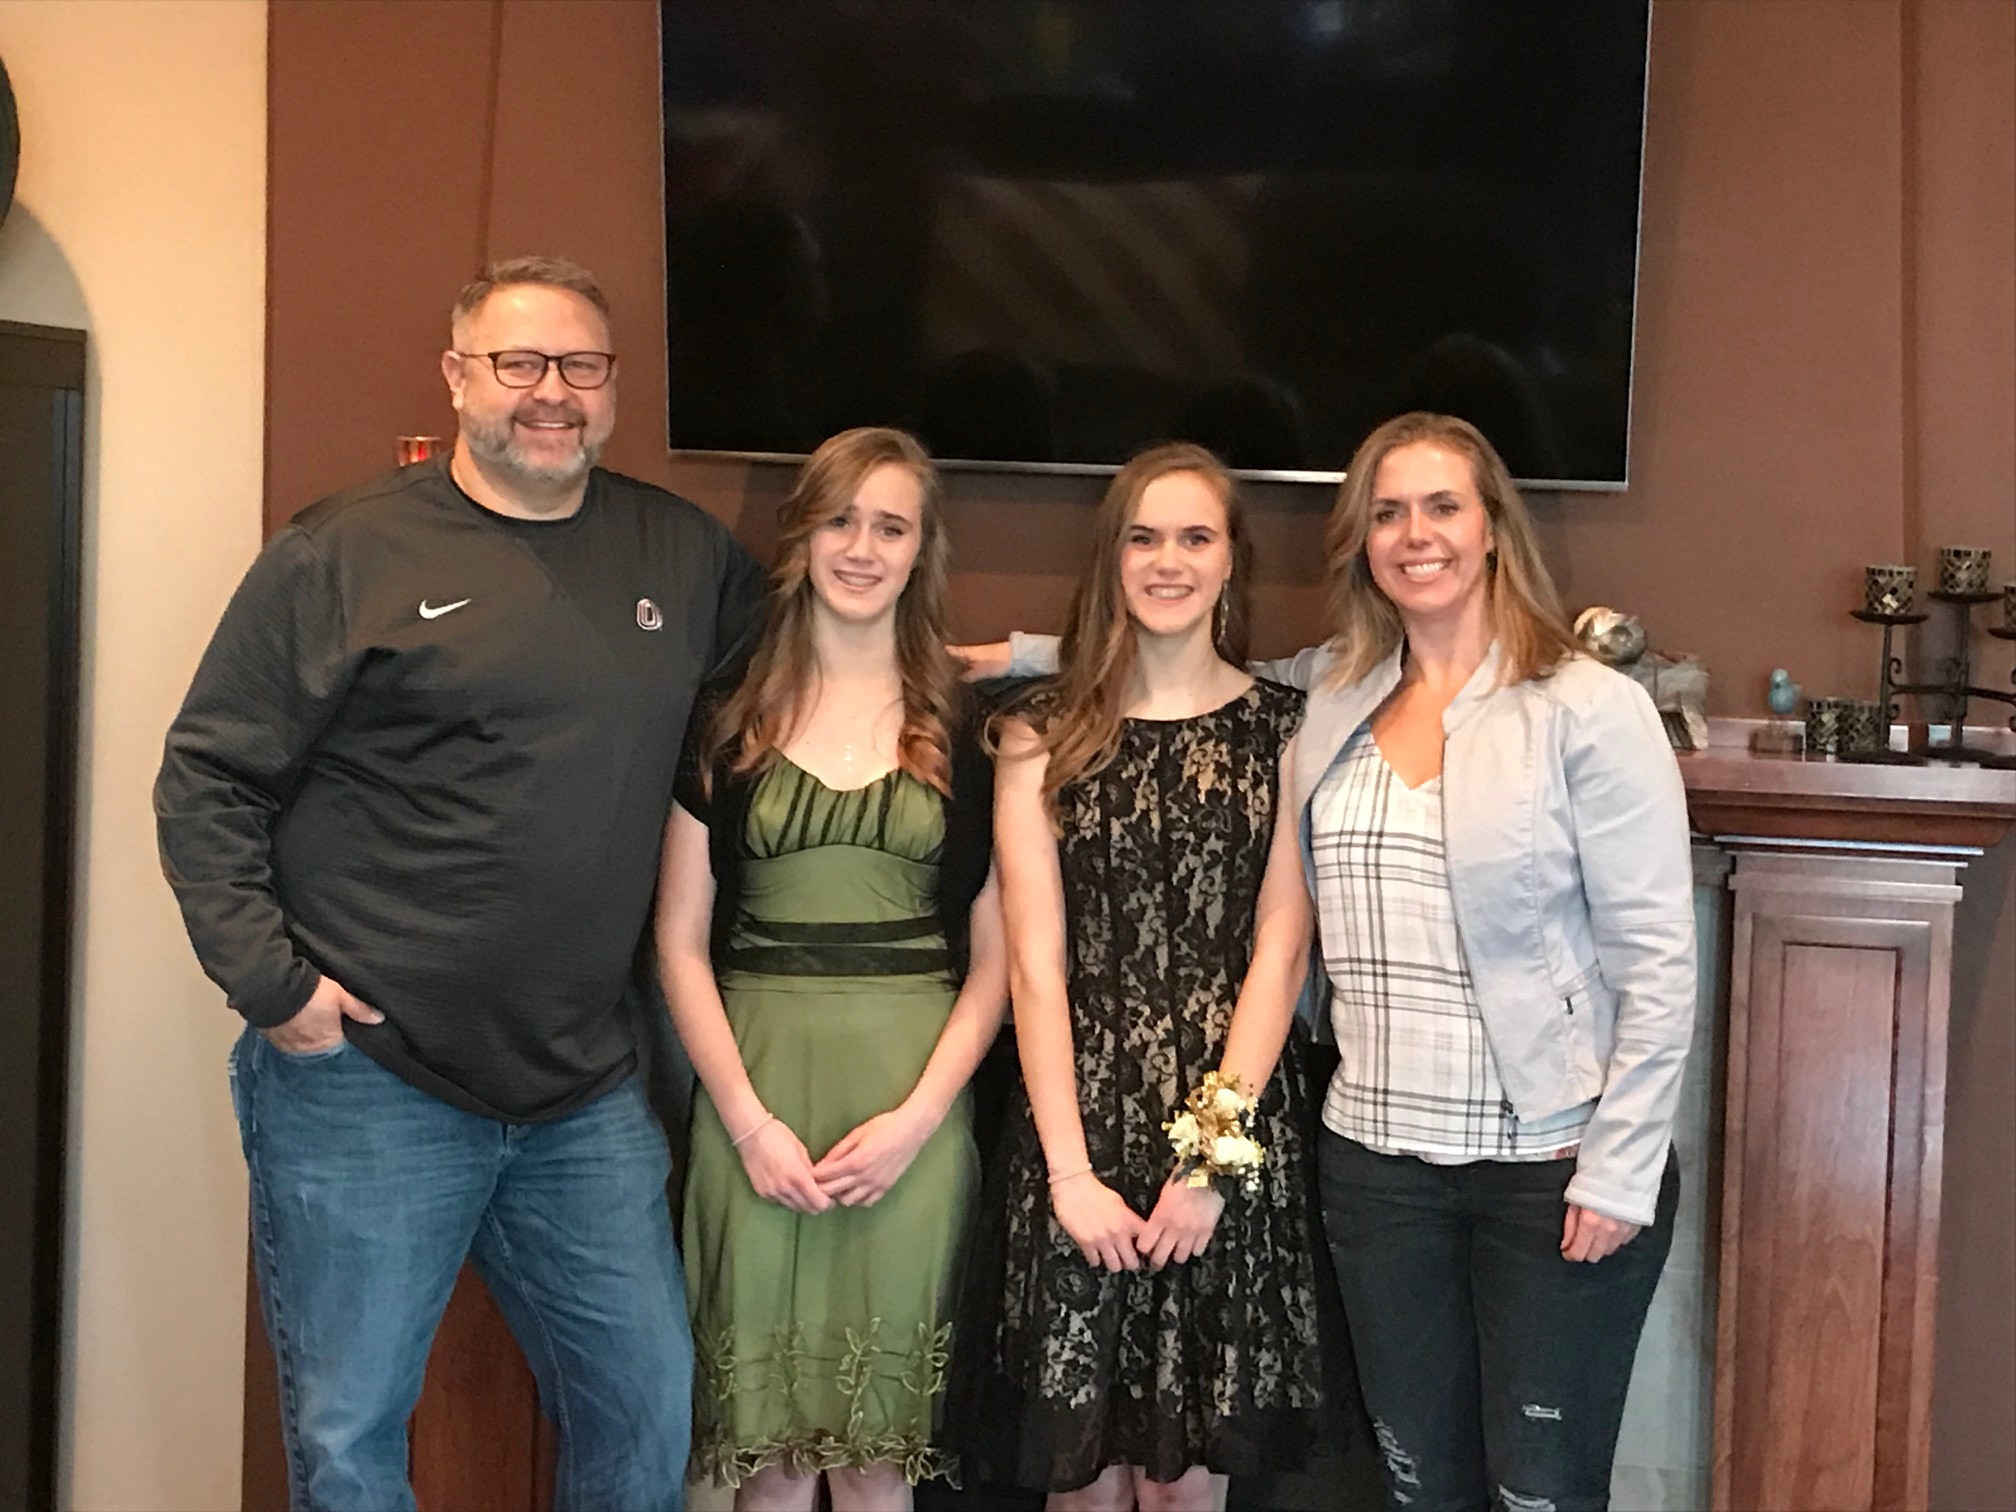 Skin cancer screening led to rare diagnosis for OPPD